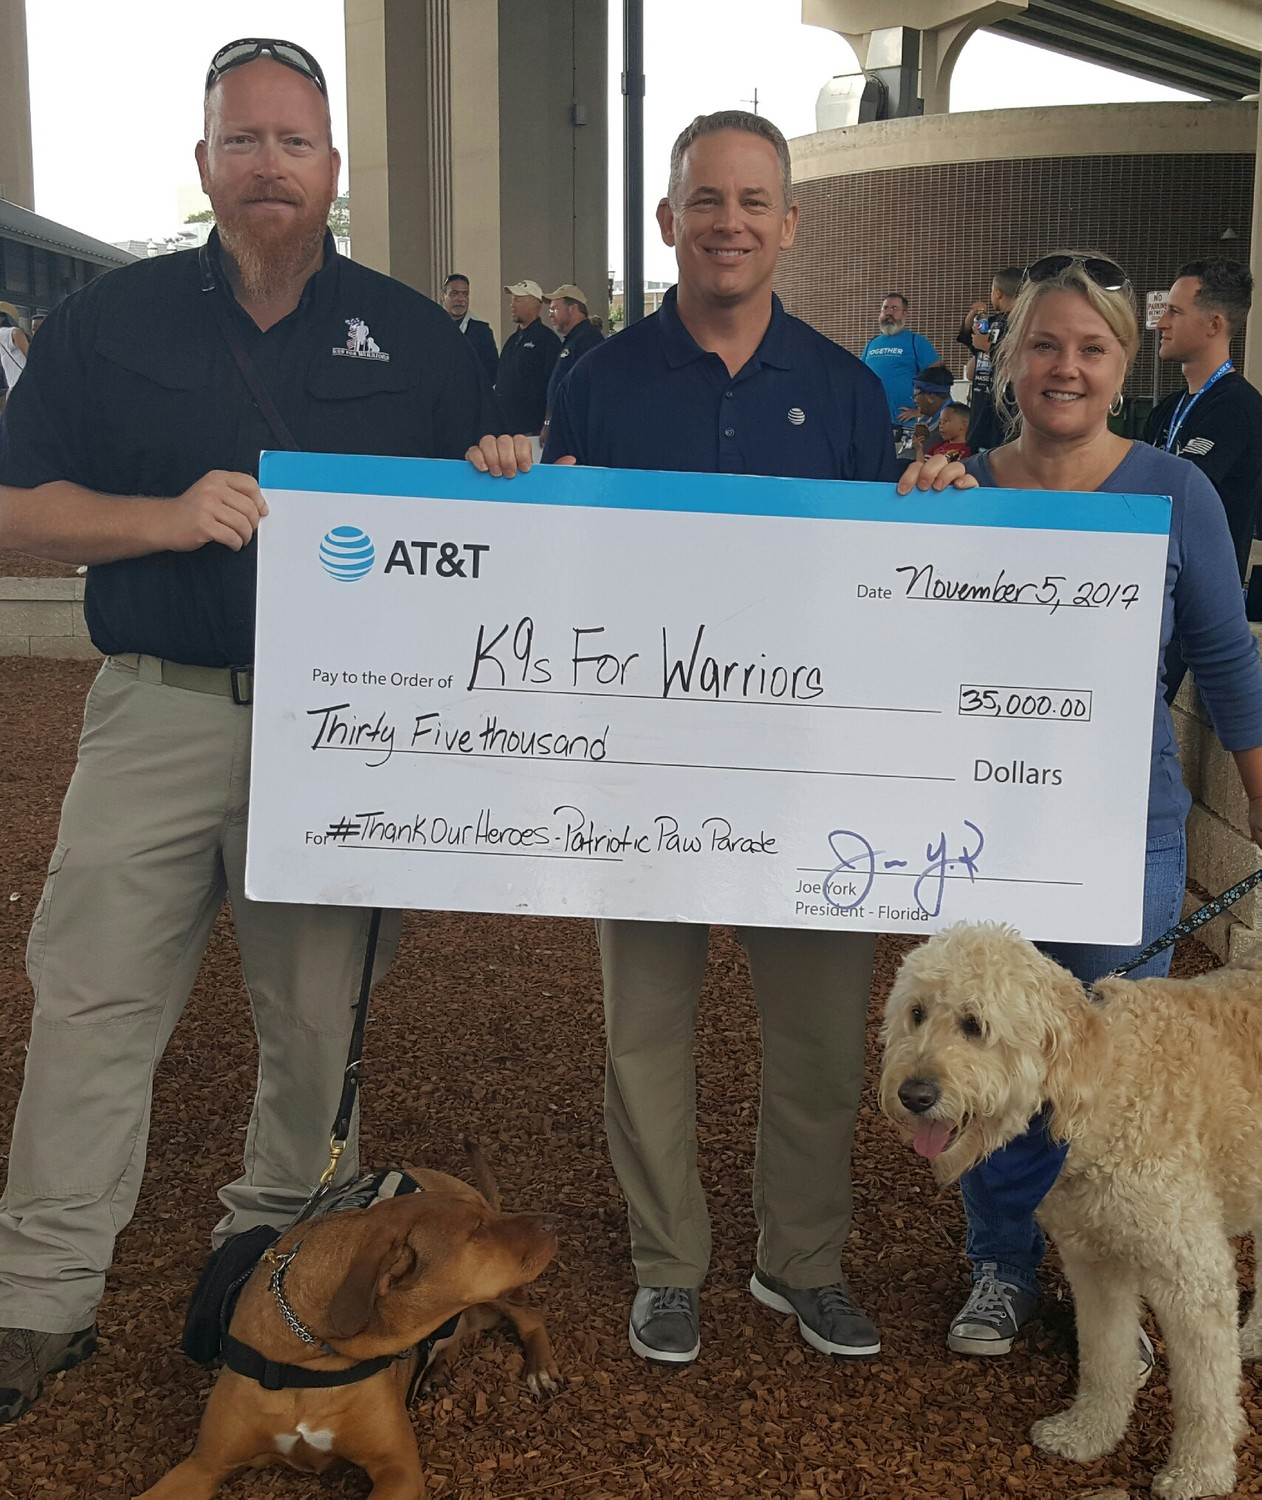 Greg Wells and Utah (left) receive a $35,000 check on behalf of K9s For Warriors from Joe York and Heather Duncan of AT&T. The company has partnered with the Ponte Vedra nonprofit as part of its Thank Our Heroes campaign. The $35,000 donation is part of a $500,000 contribution from AT&T to veterans organizations across the country.